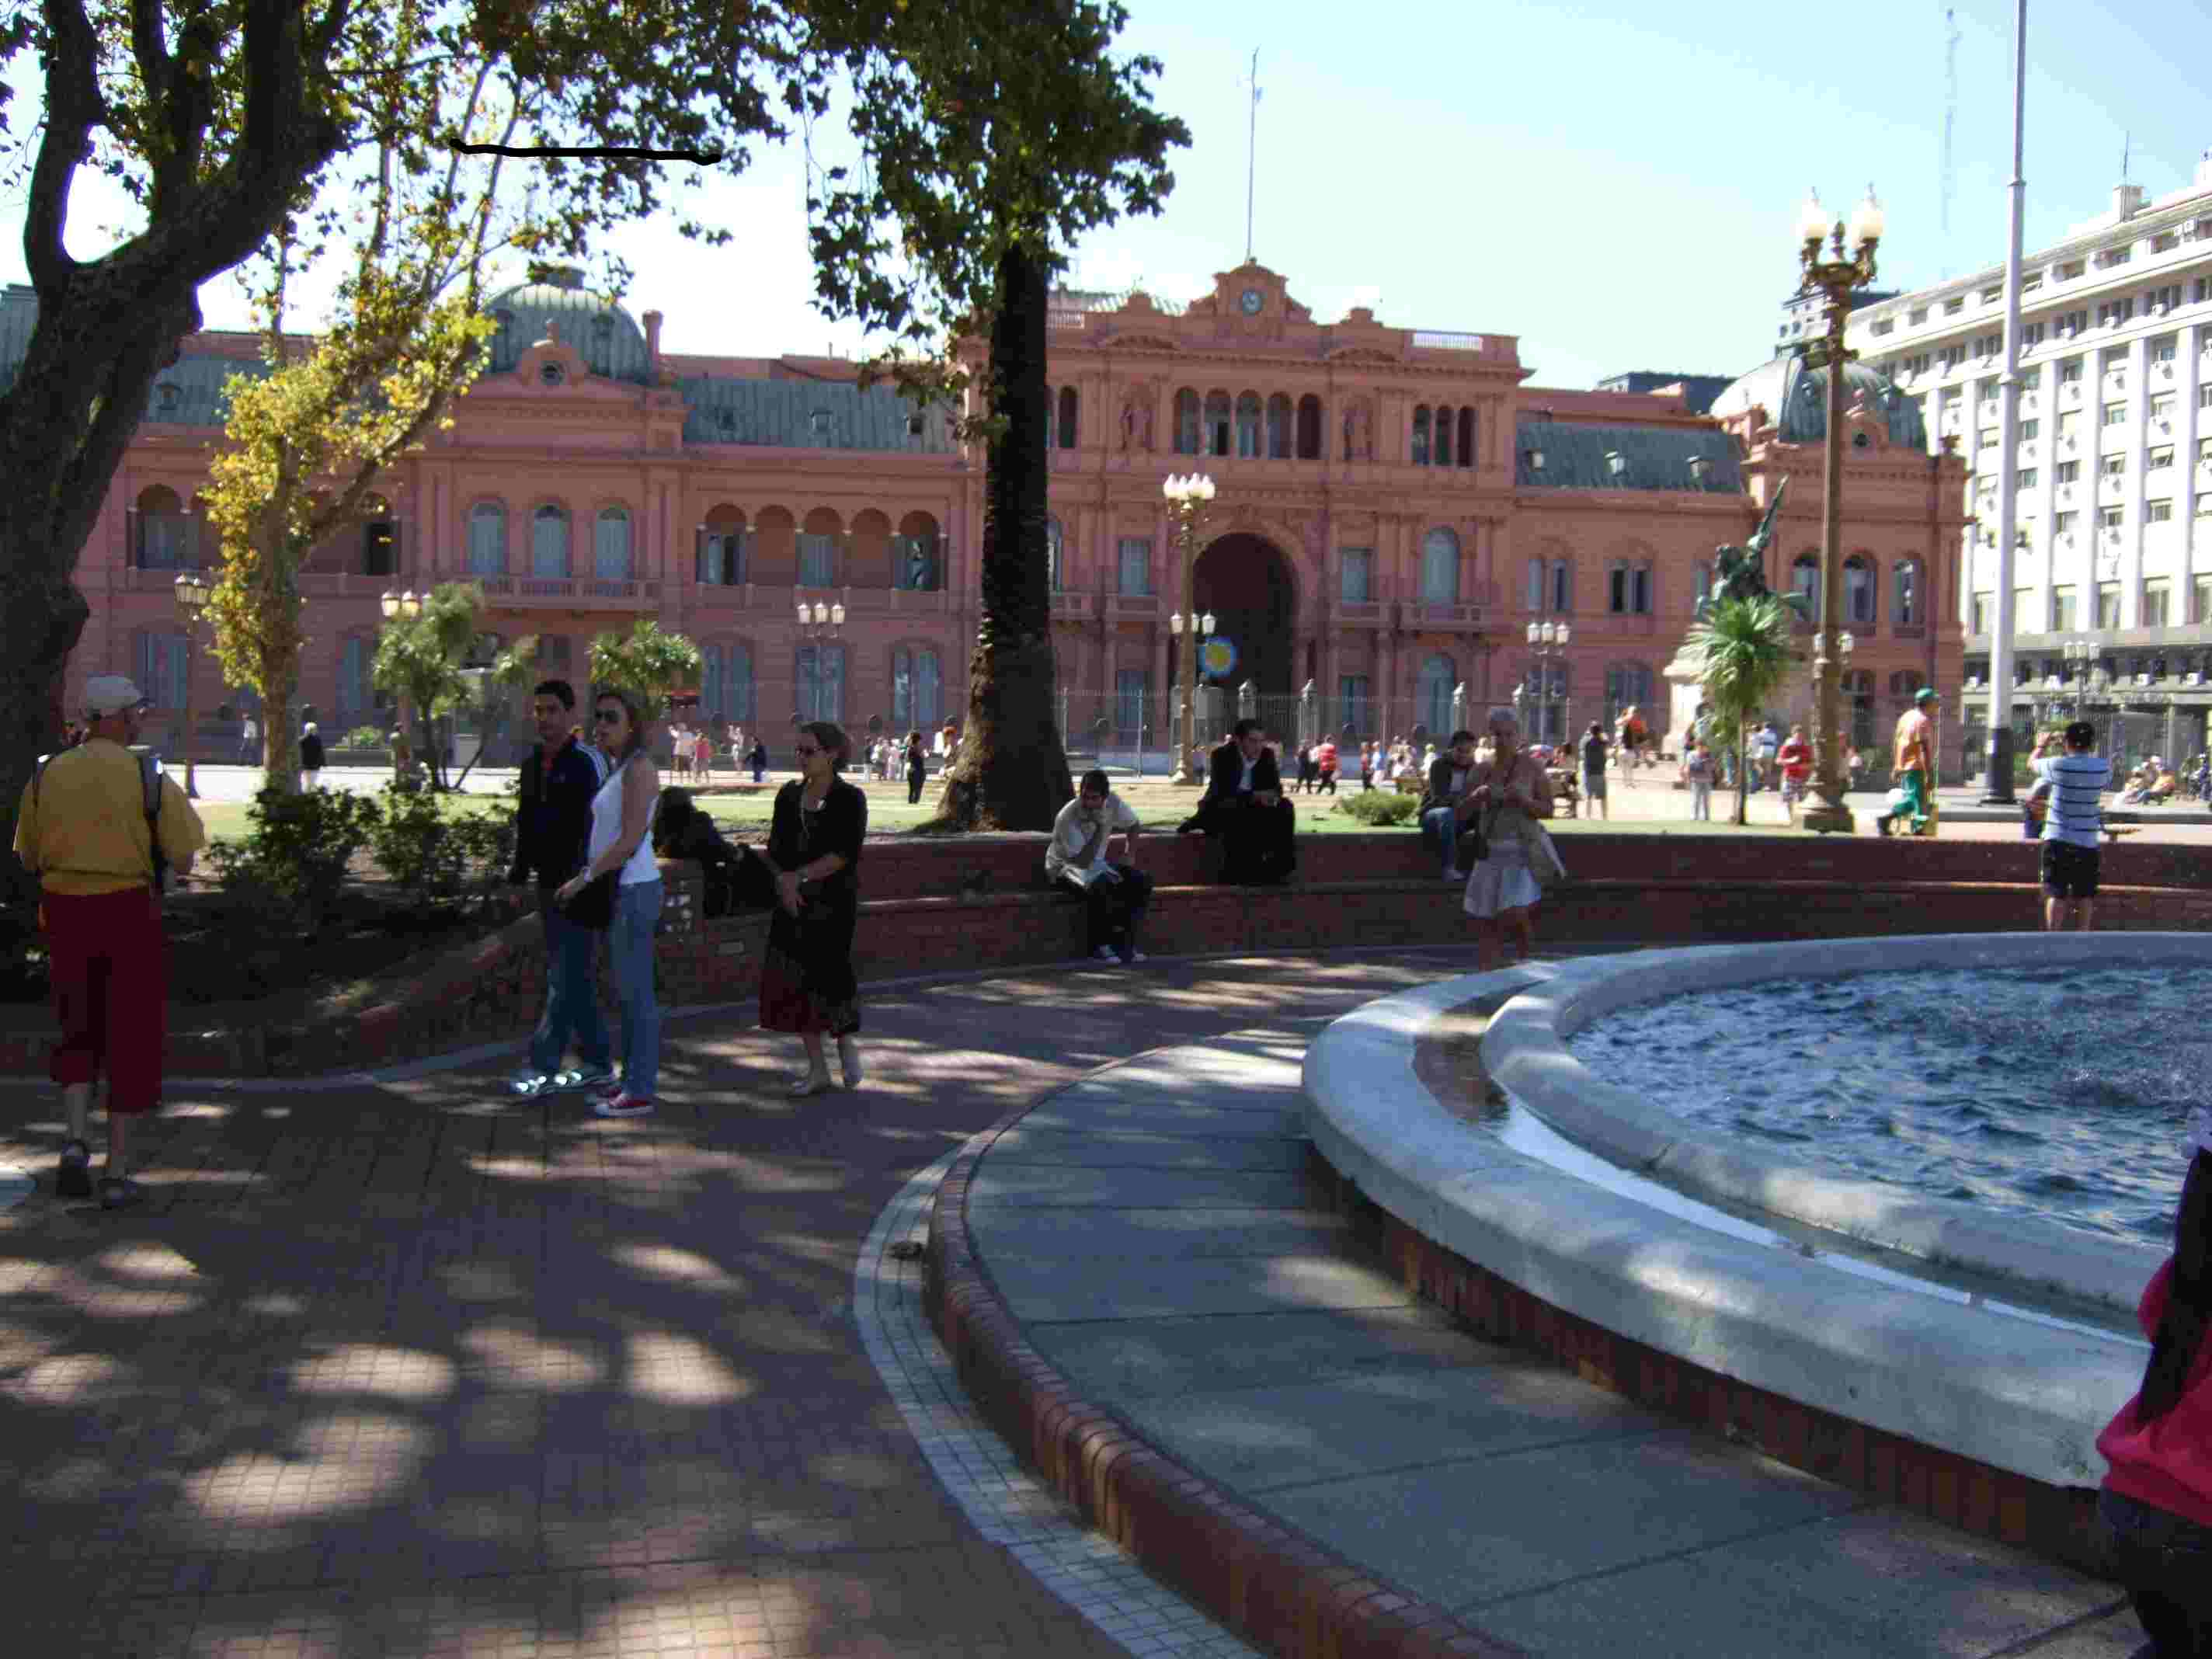 Casa Rosada - government house in Buenos Aires